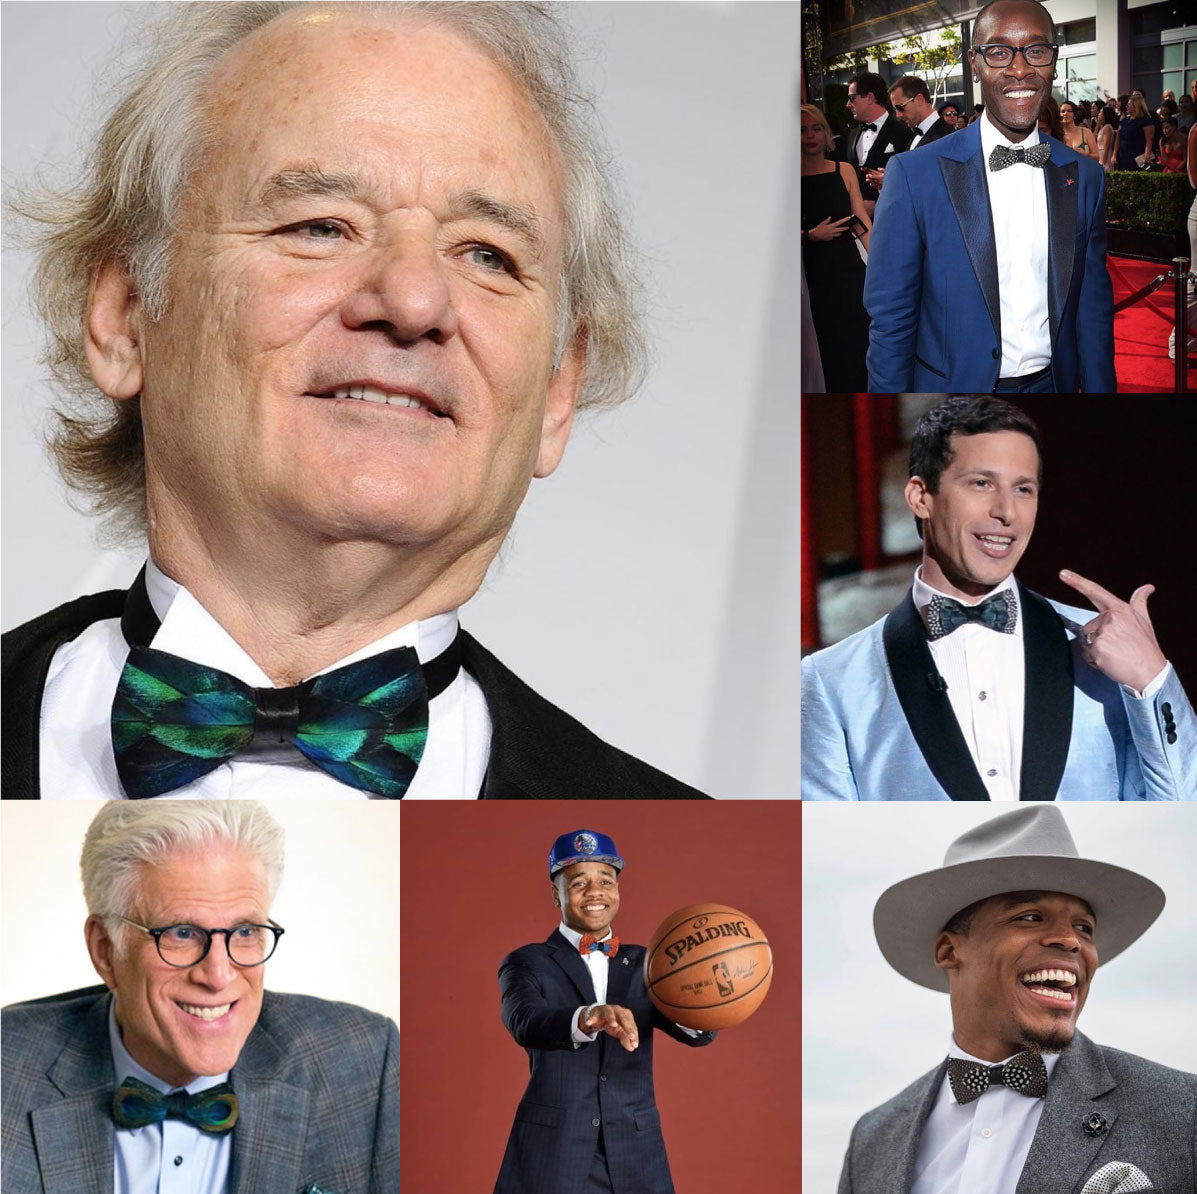 Brackish Bowties are popular among celebrities like Bill Murray, who is awesome